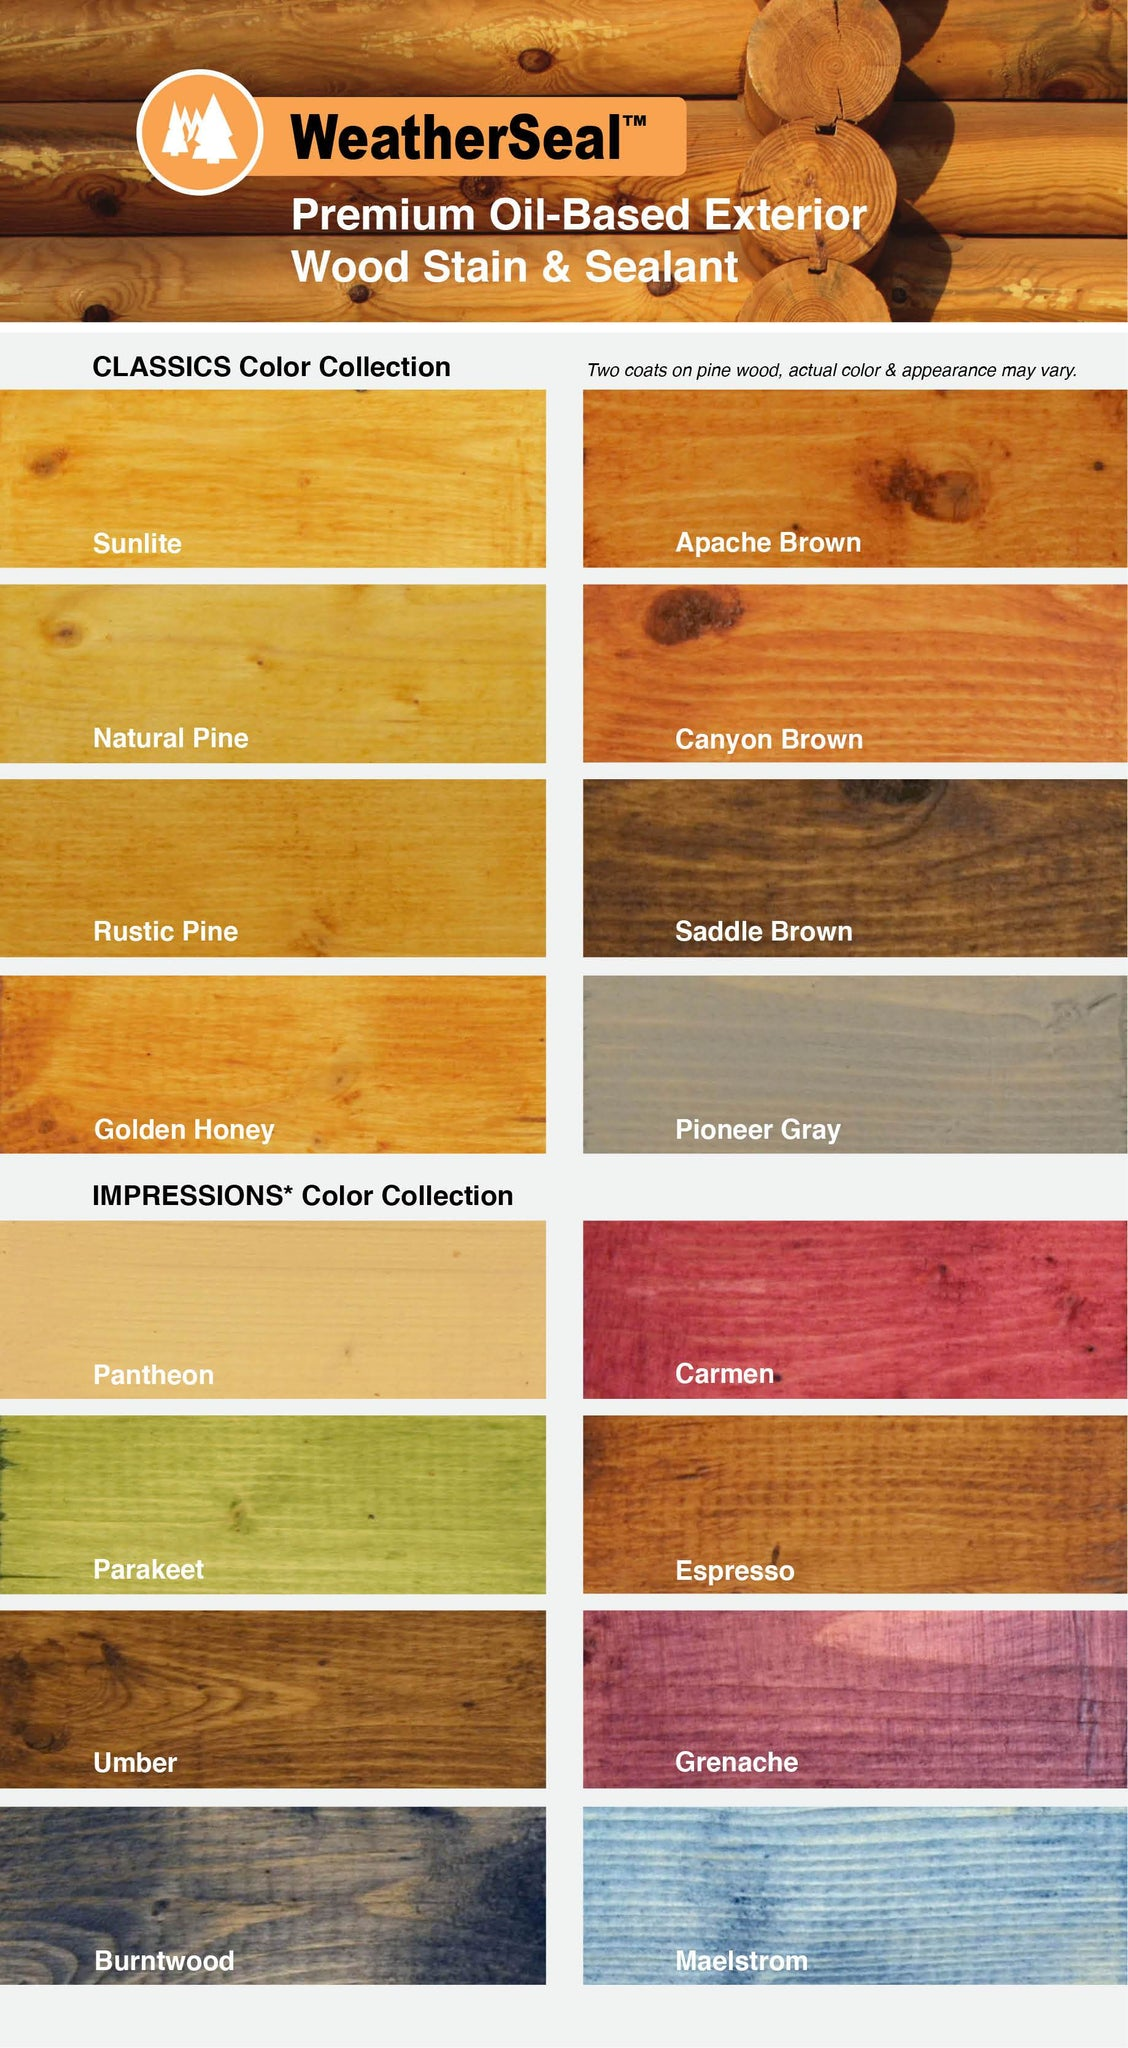 Continental Products Weatherseal Premium Exterior Wood Stain And Seala Log Home Center